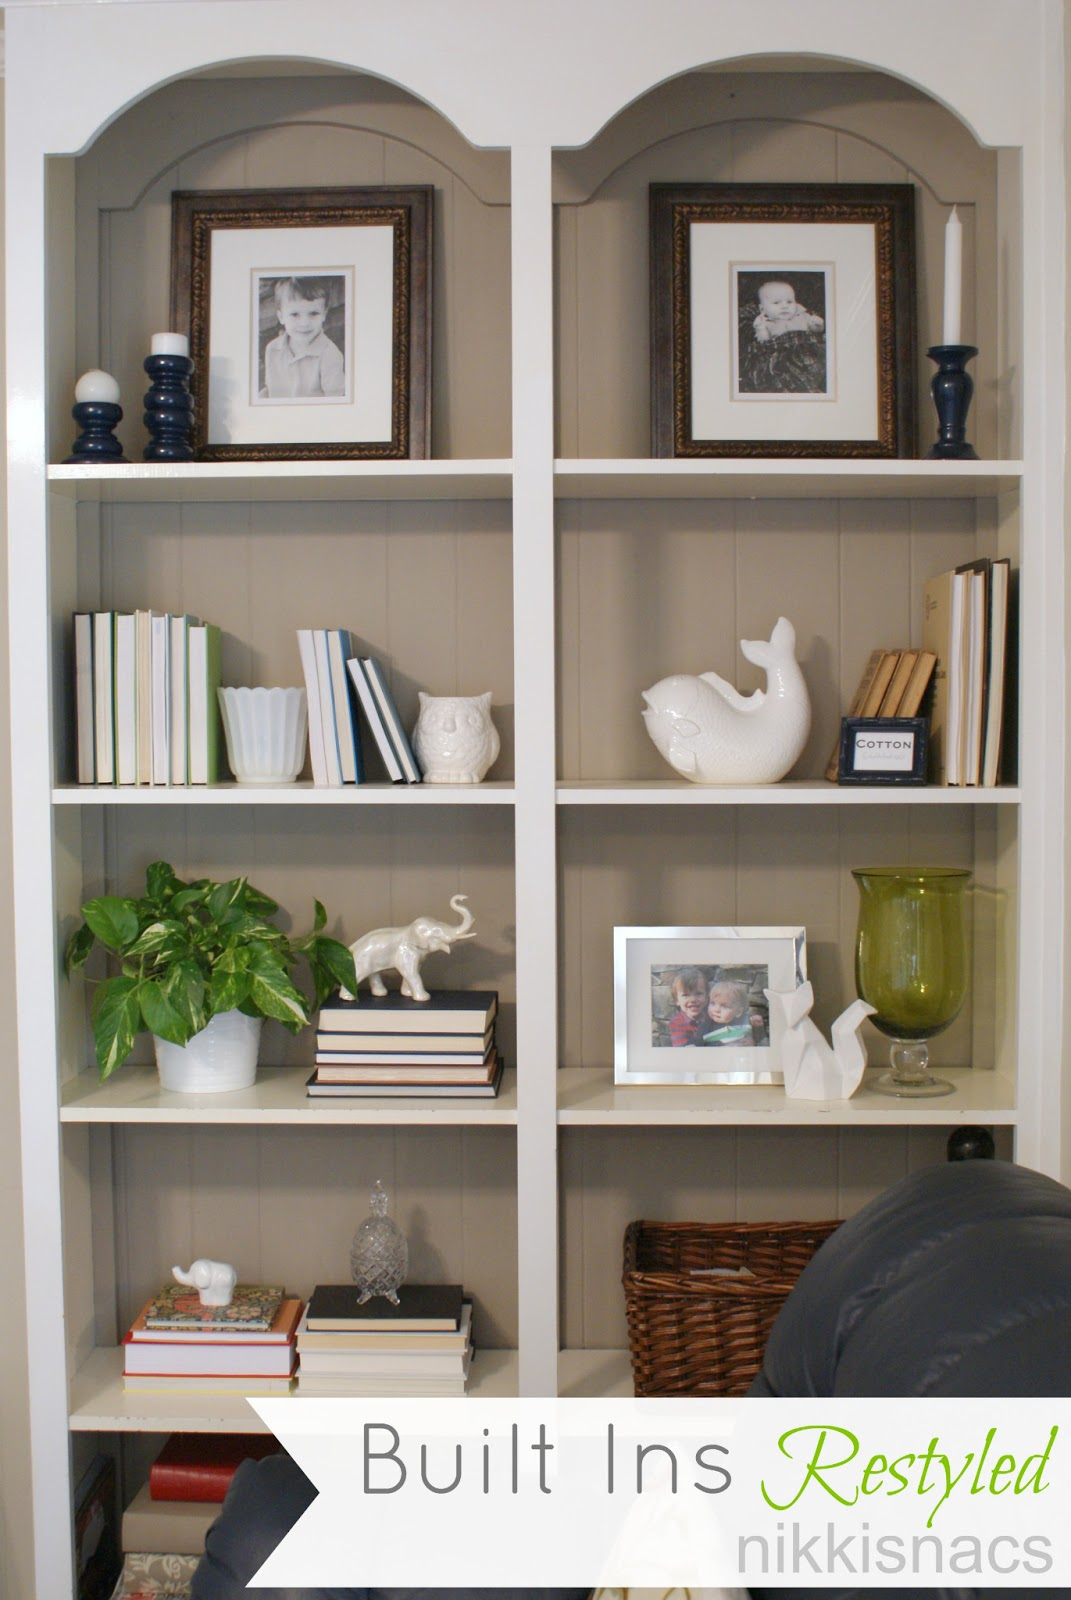 Nikkis 39 nacs the built ins restyled Shelves design ideas